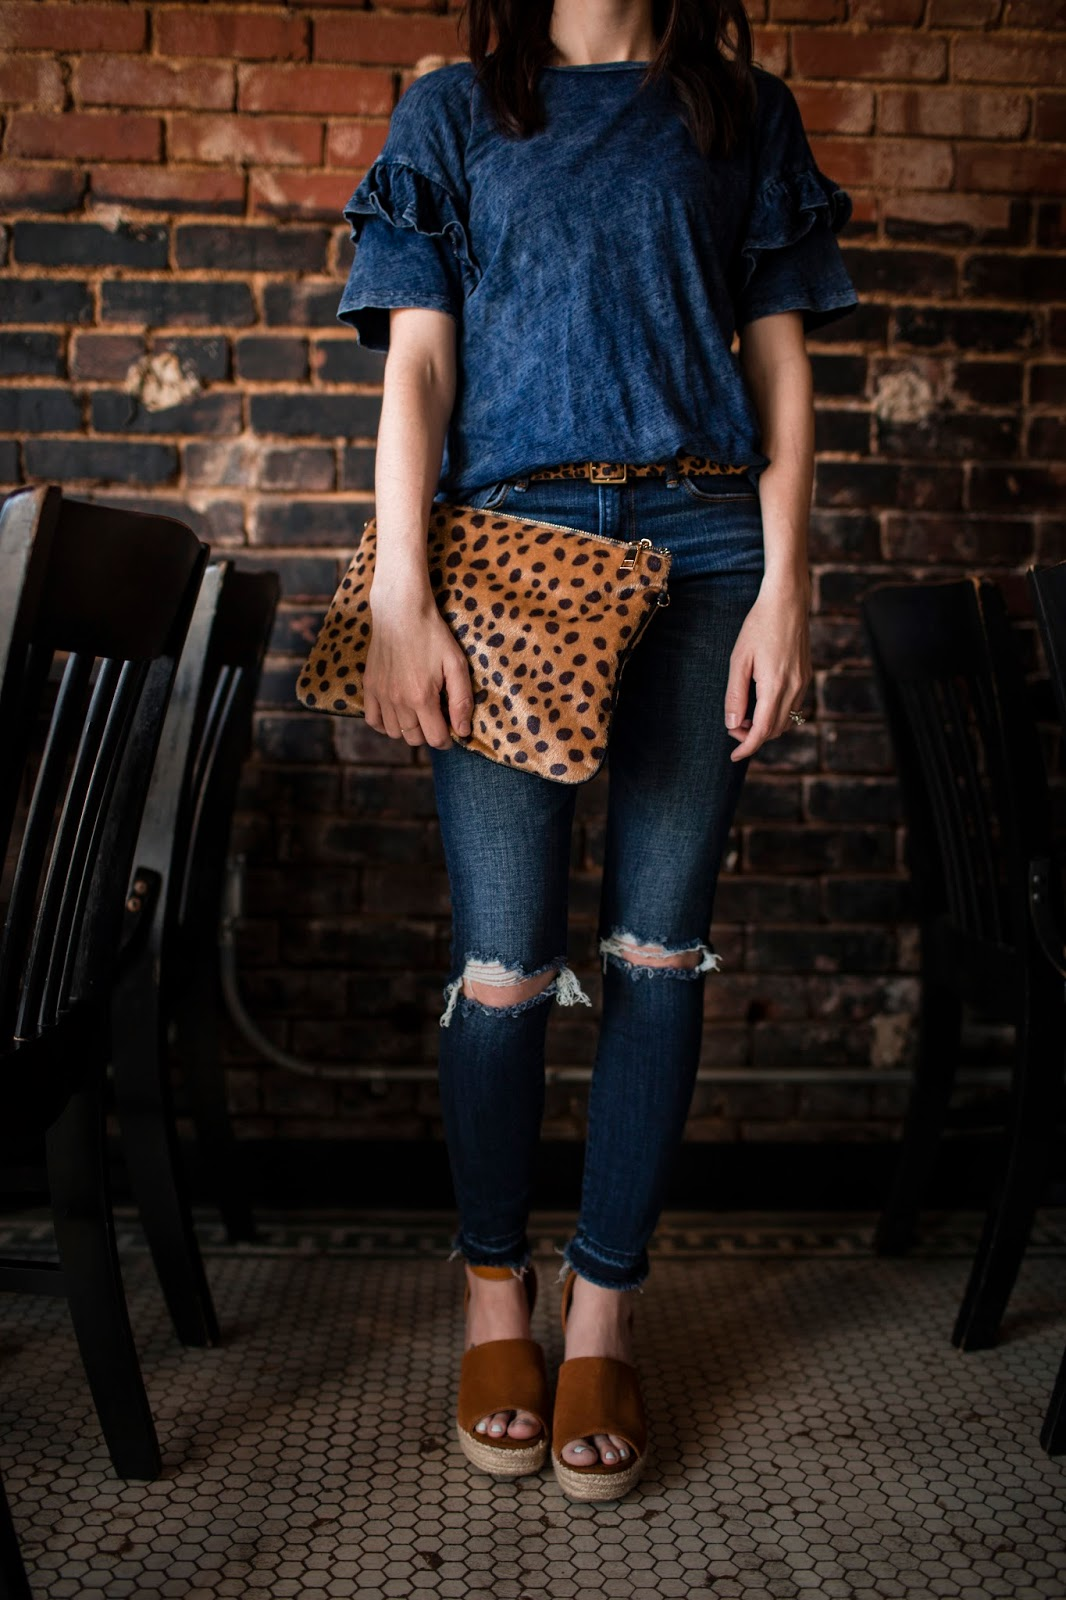 Casual look with leopard clutch and espadrille wedges